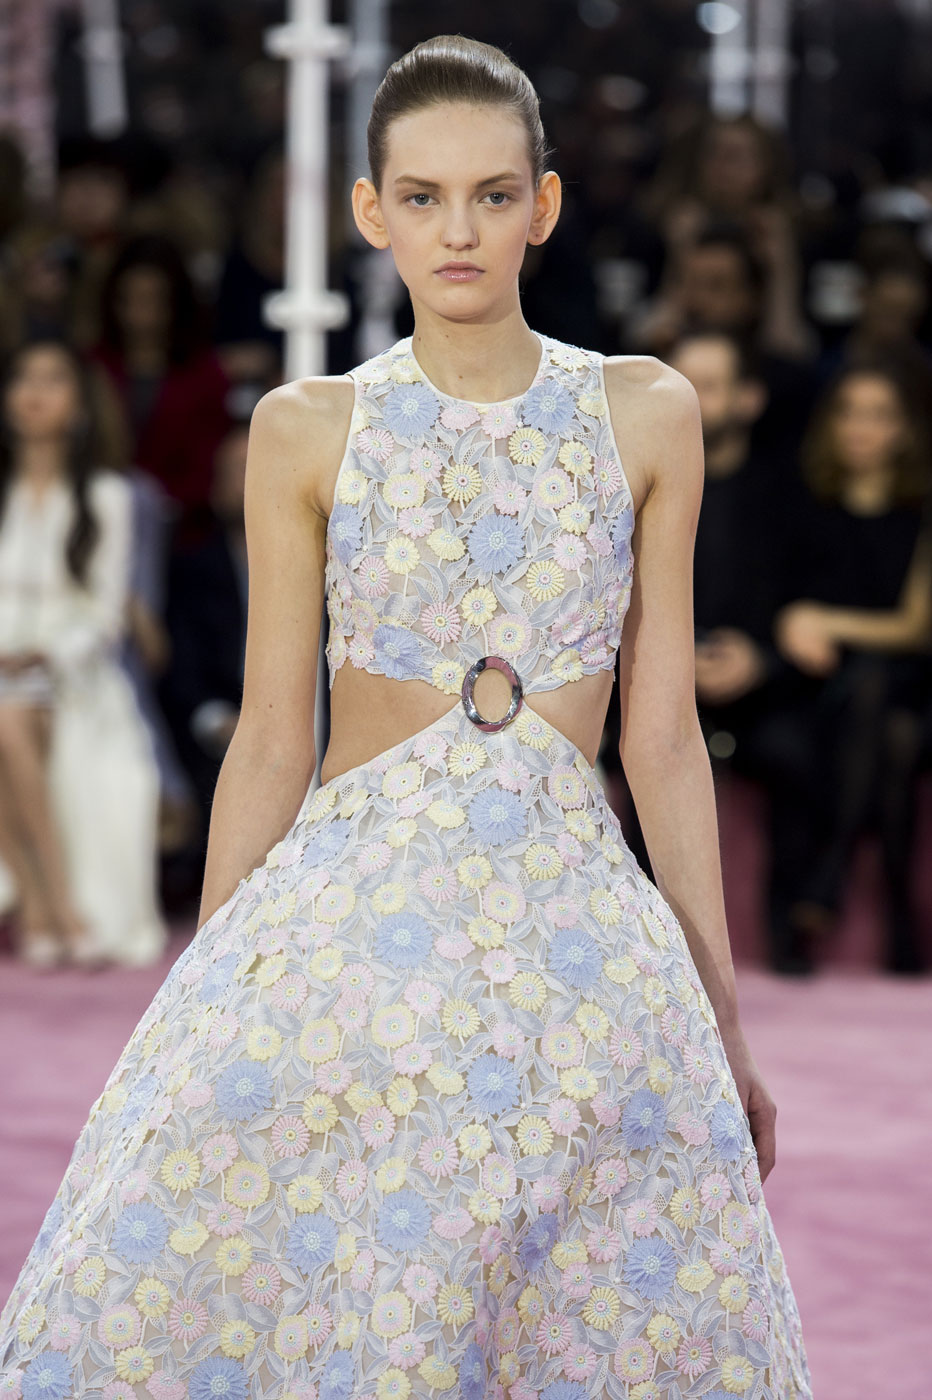 Christian-Dior-fashion-runway-show-haute-couture-paris-spring-summer-2015-the-impression-036